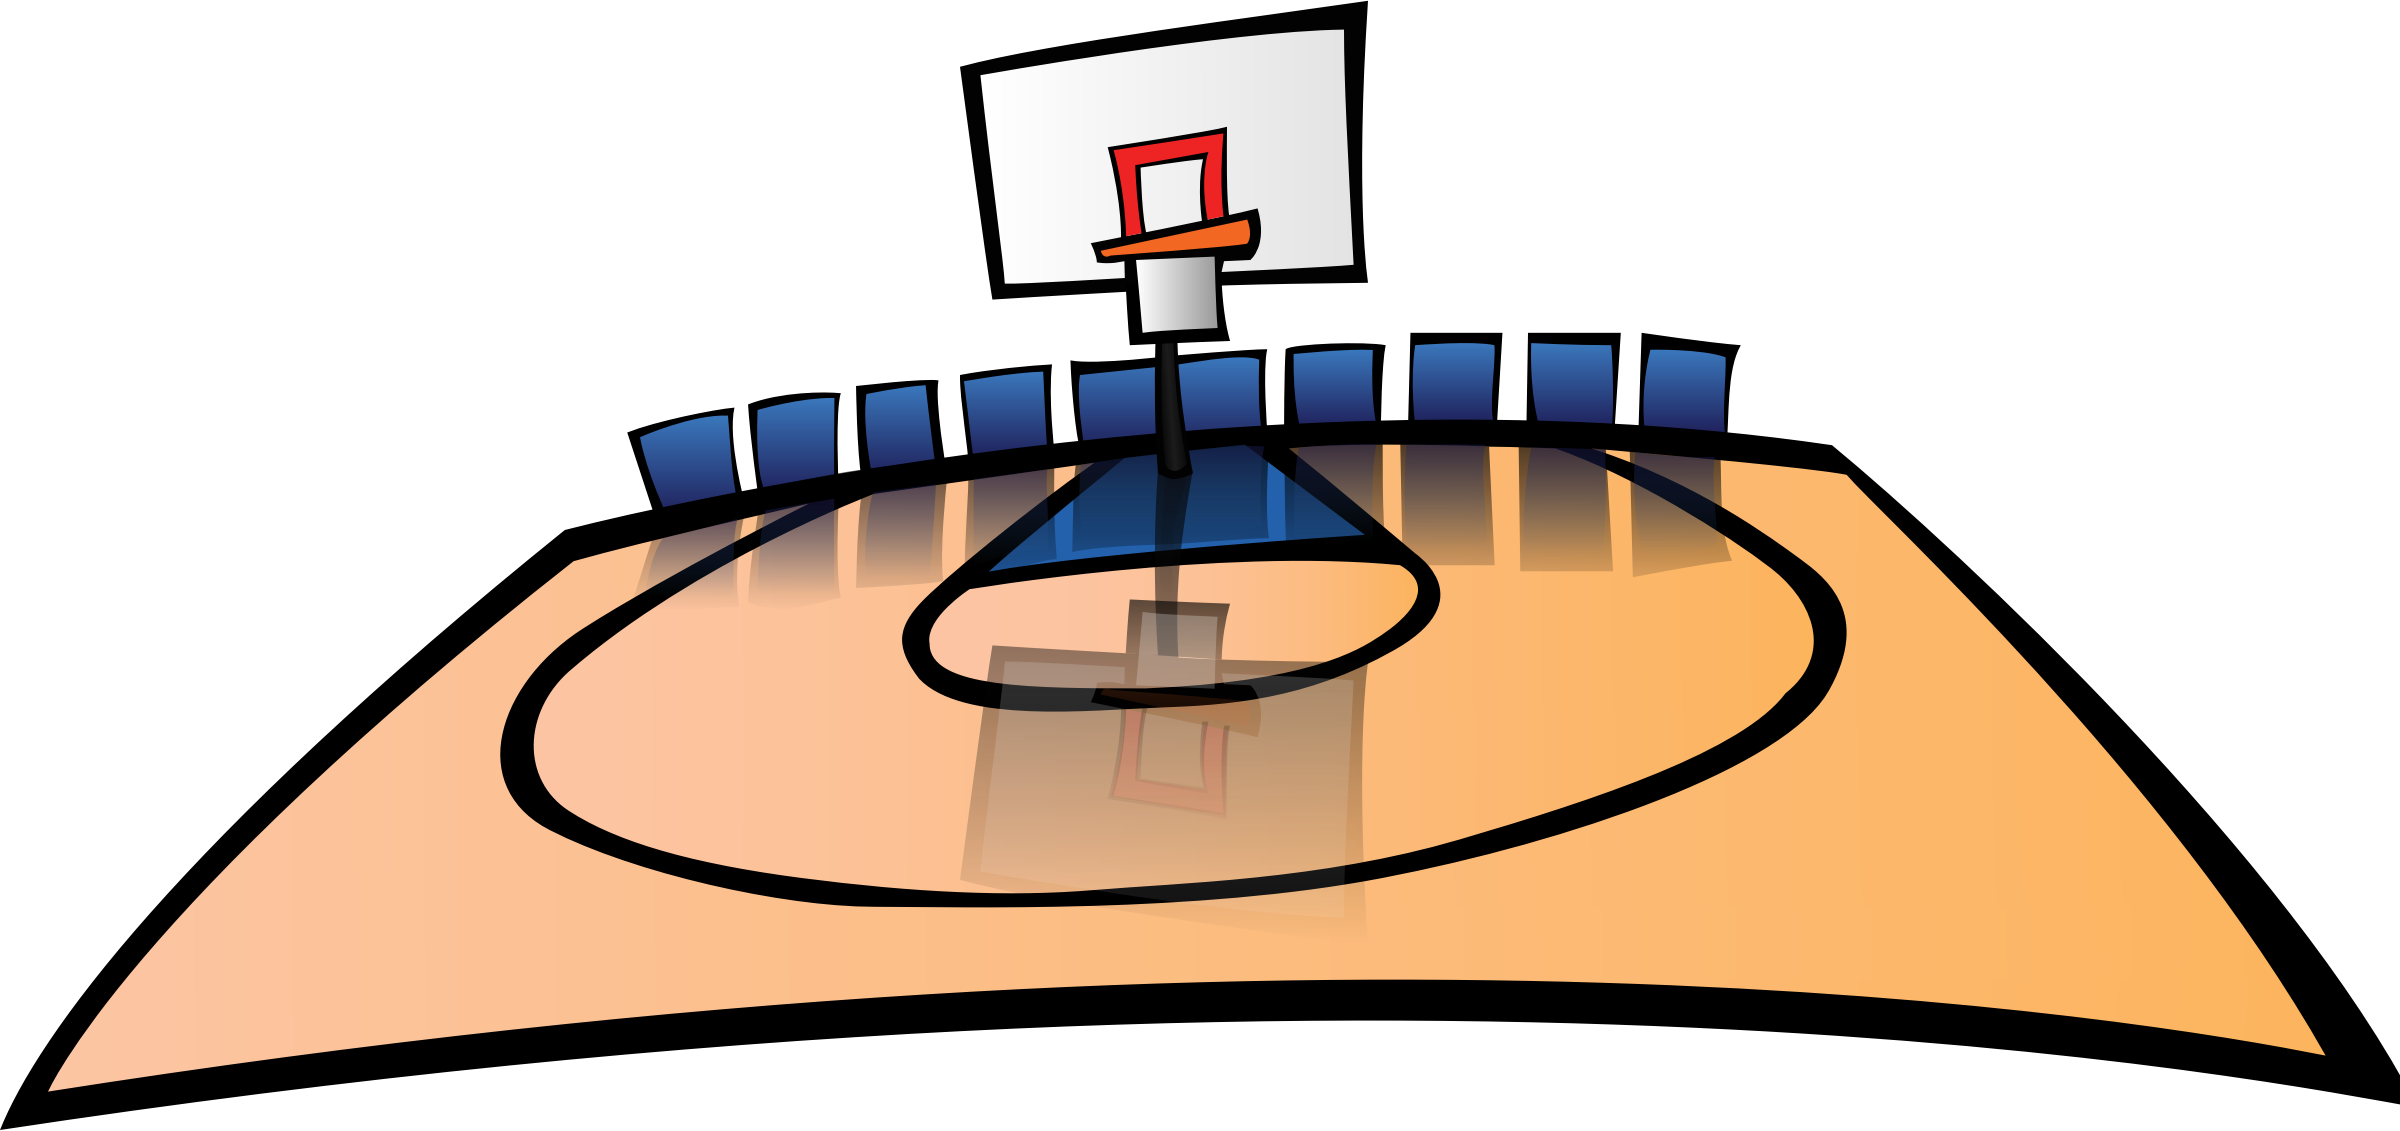 Free clipart of basketball clip freeuse stock Clipart - Basketball Court clip freeuse stock